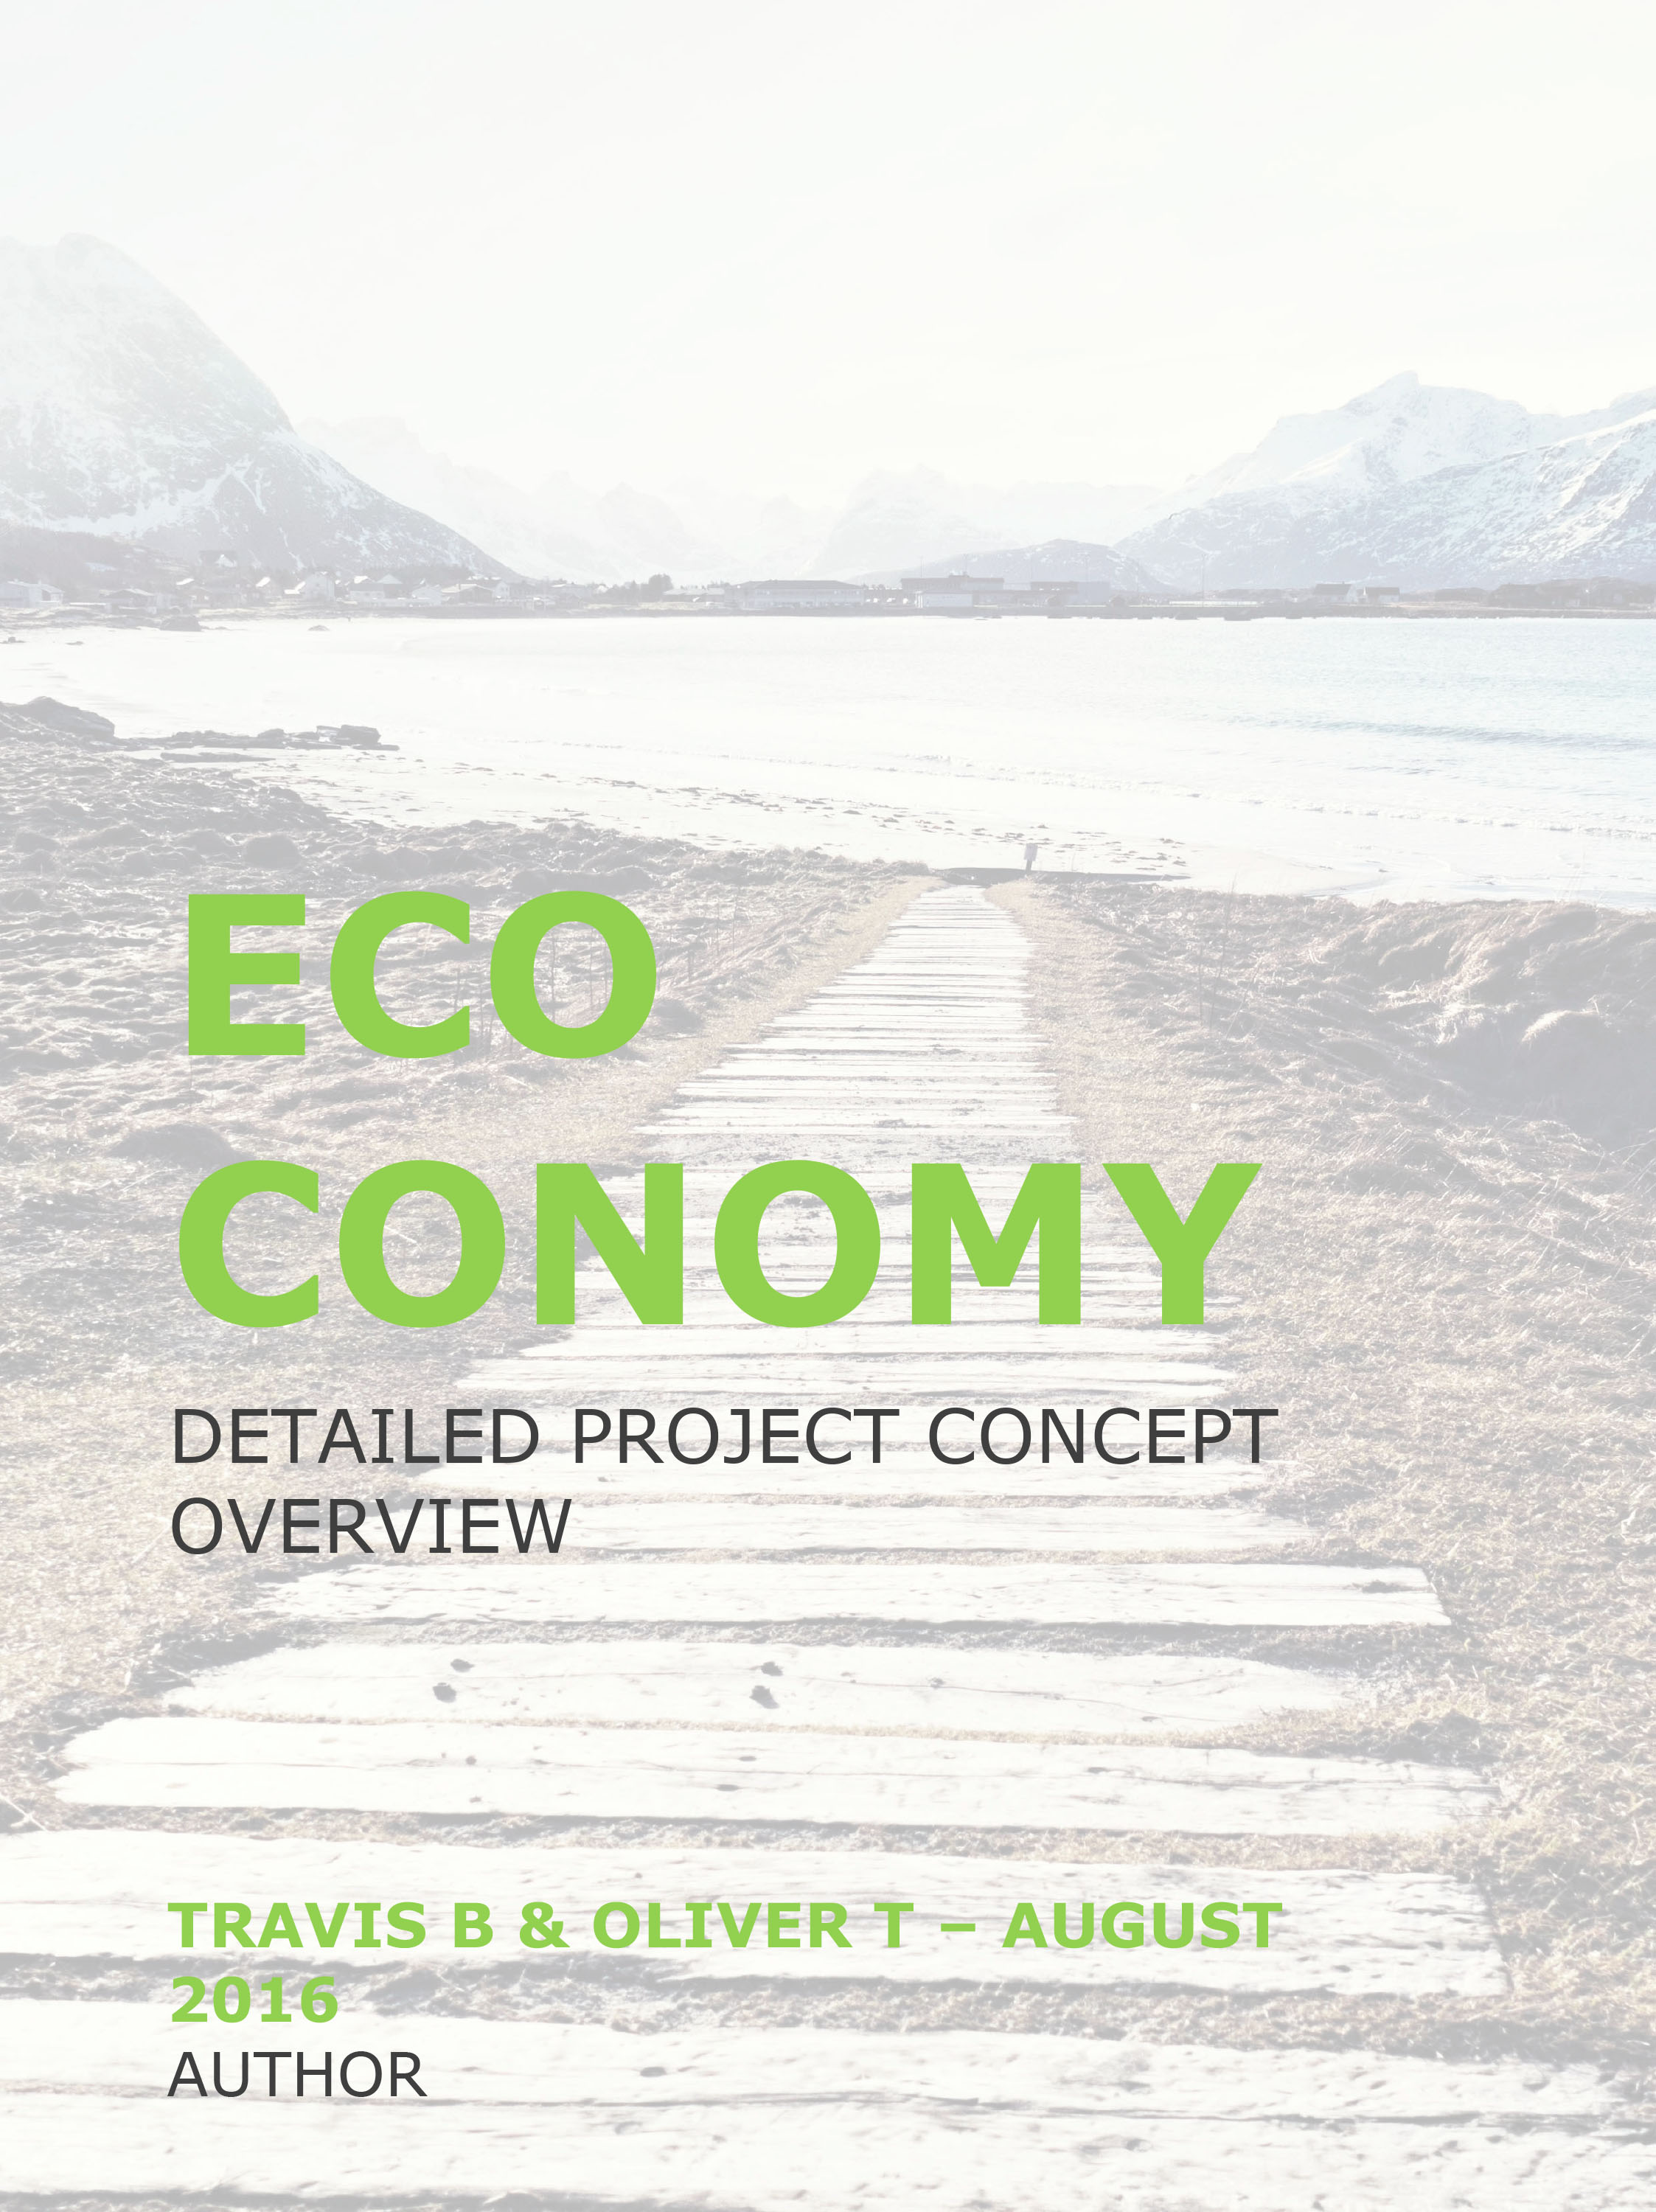 ECOCONOMY - Detailed Project Concept Overview - Click  here  to request PDF Document